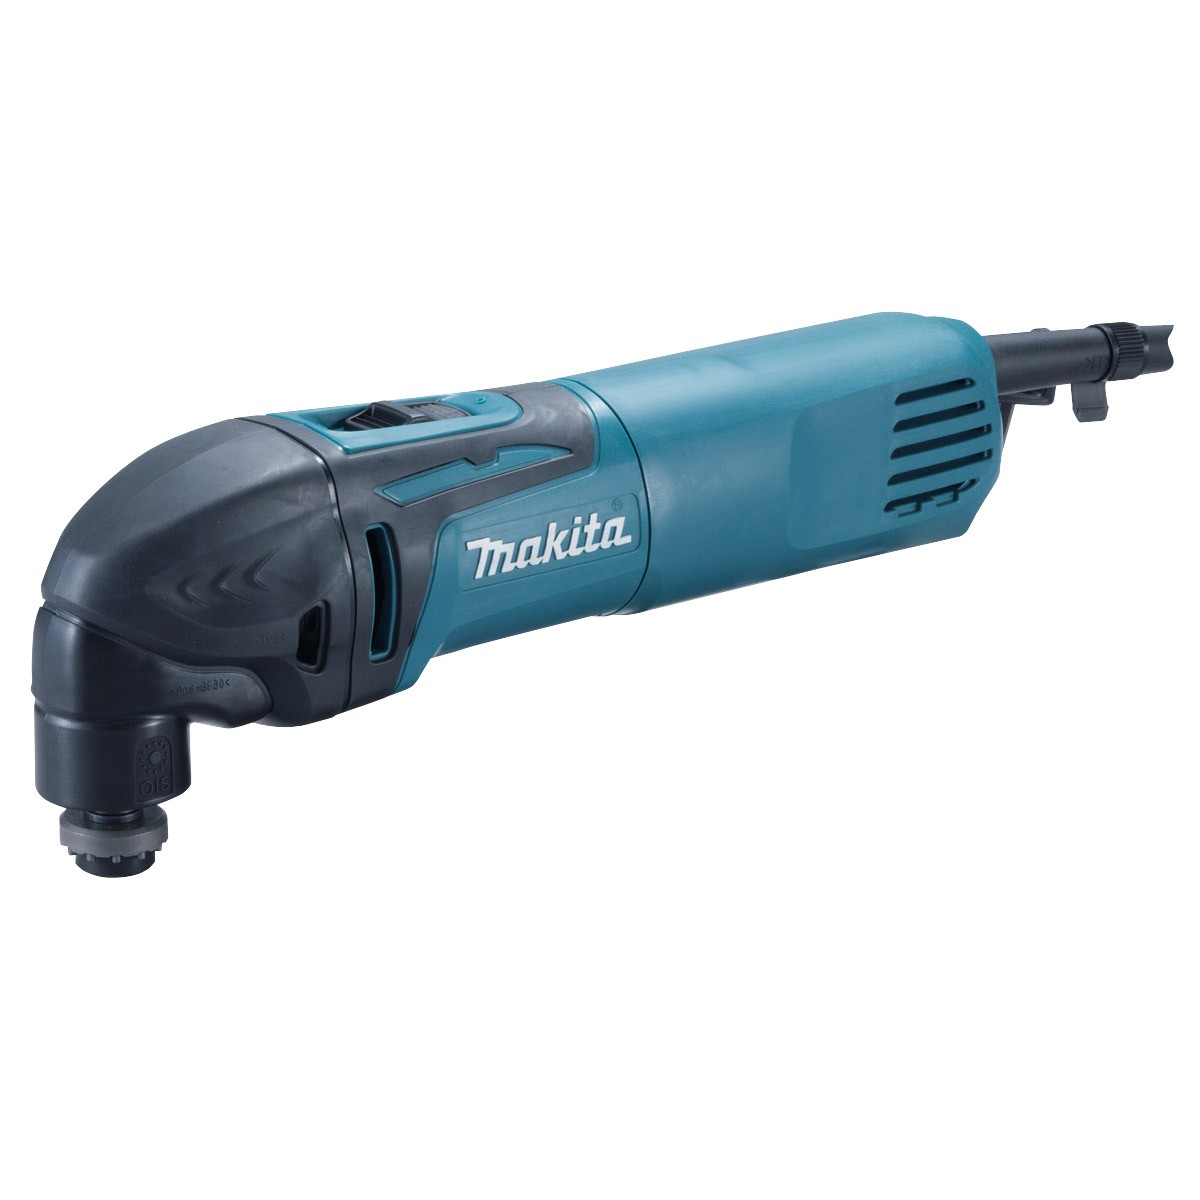 Makita TM3000C 320W Oscillating Multi Cutter Multitool